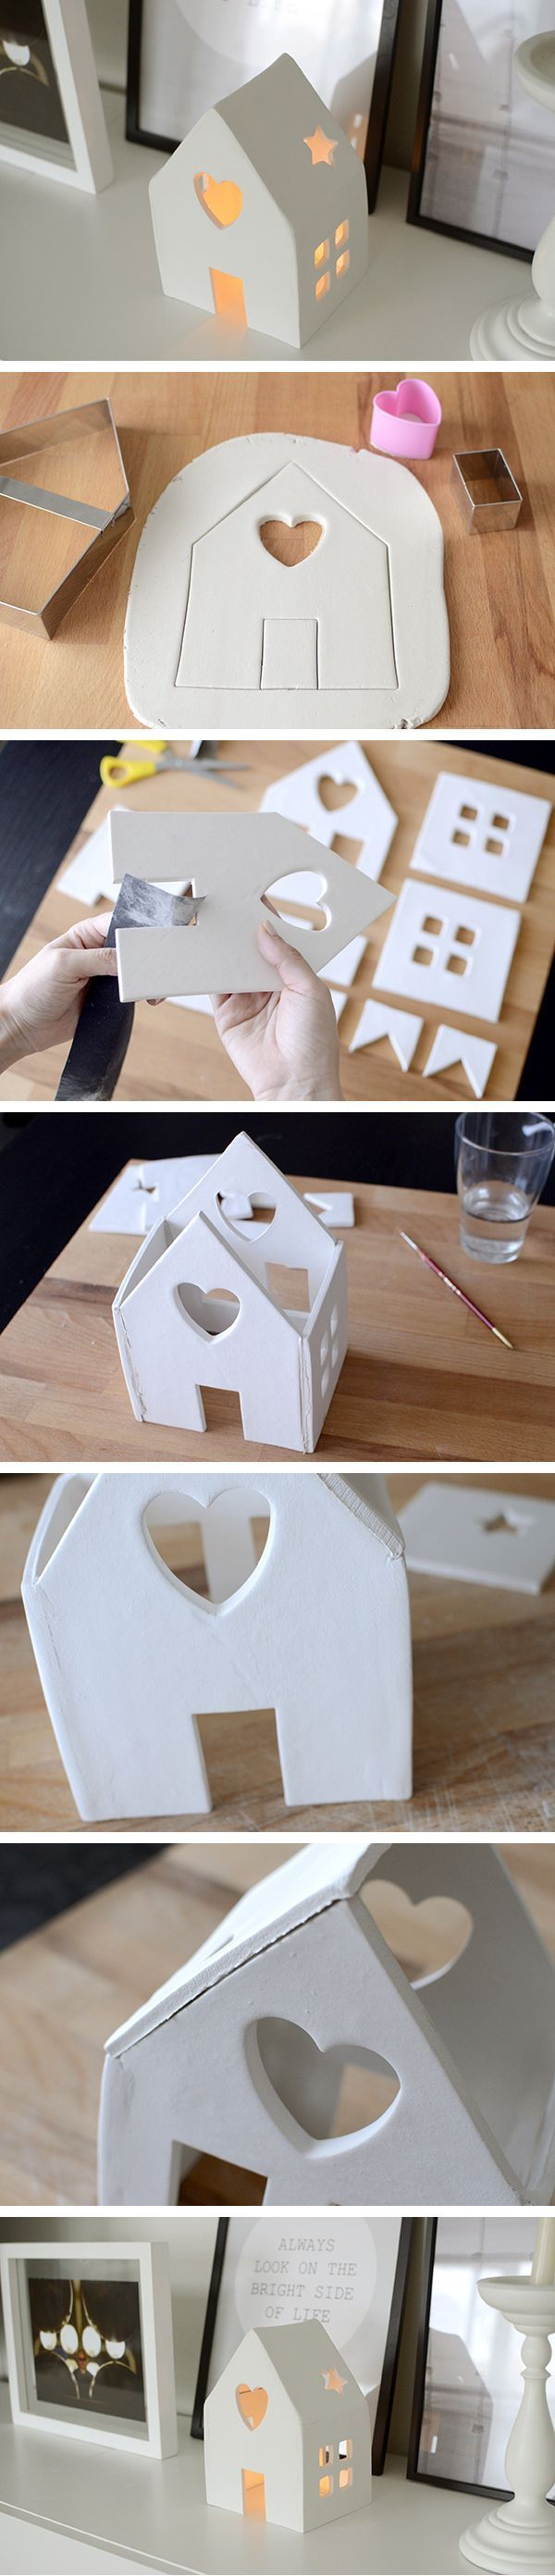 DIY: House candleholder with air dry clay - DIY: casita portavelas con pasta de…